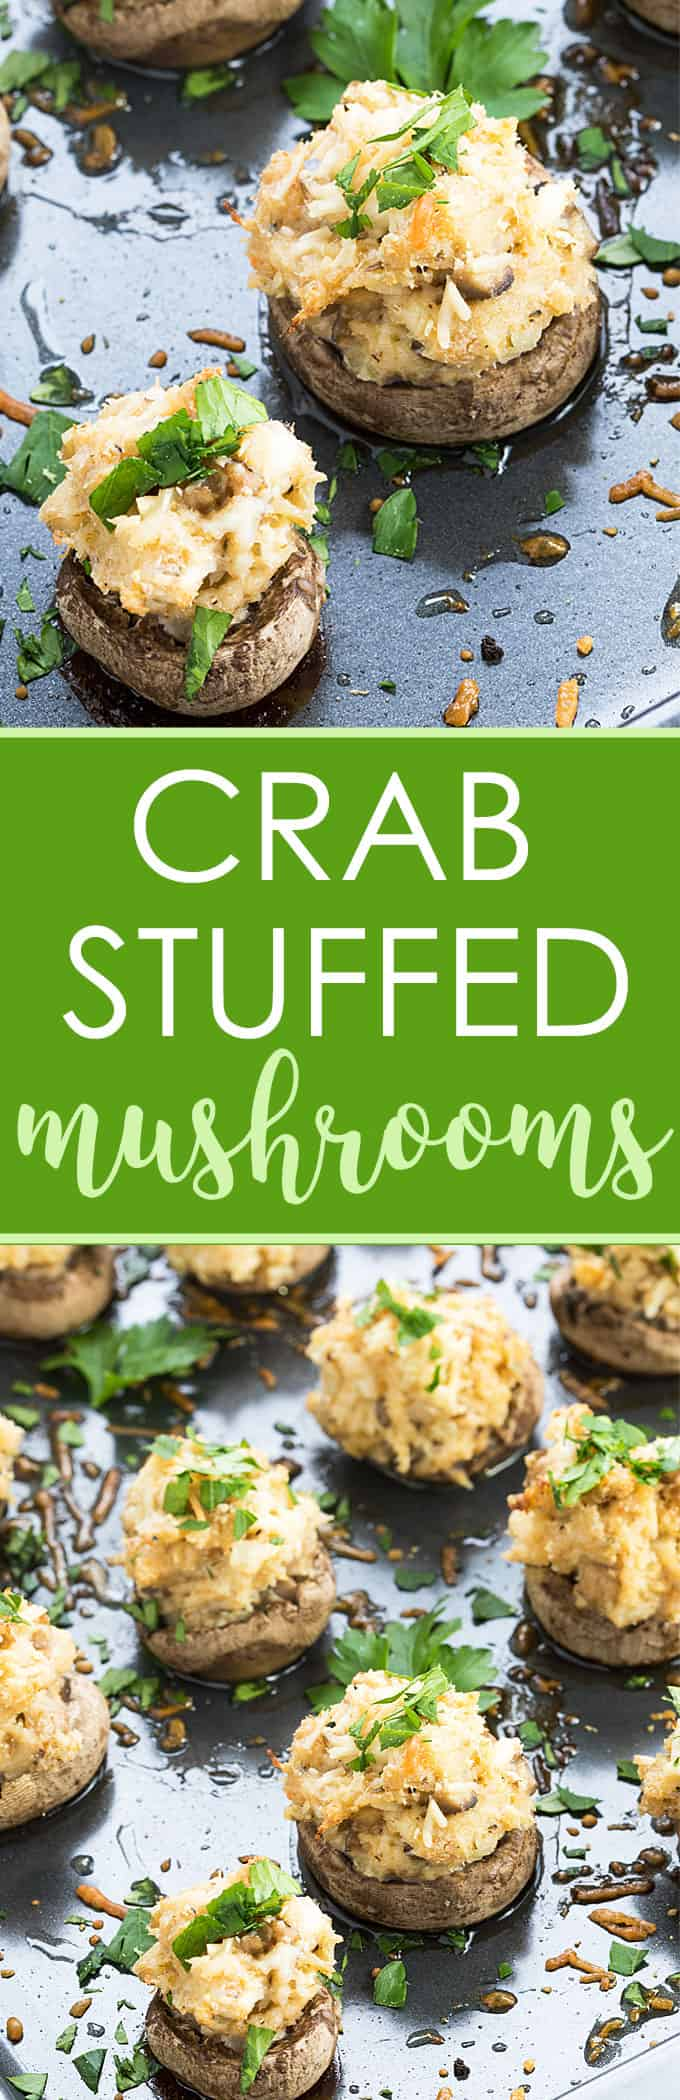 Crab Stuffed Mushrooms - Mushroom caps stuffed with a creamy, cheesy and savory crab meat filling!